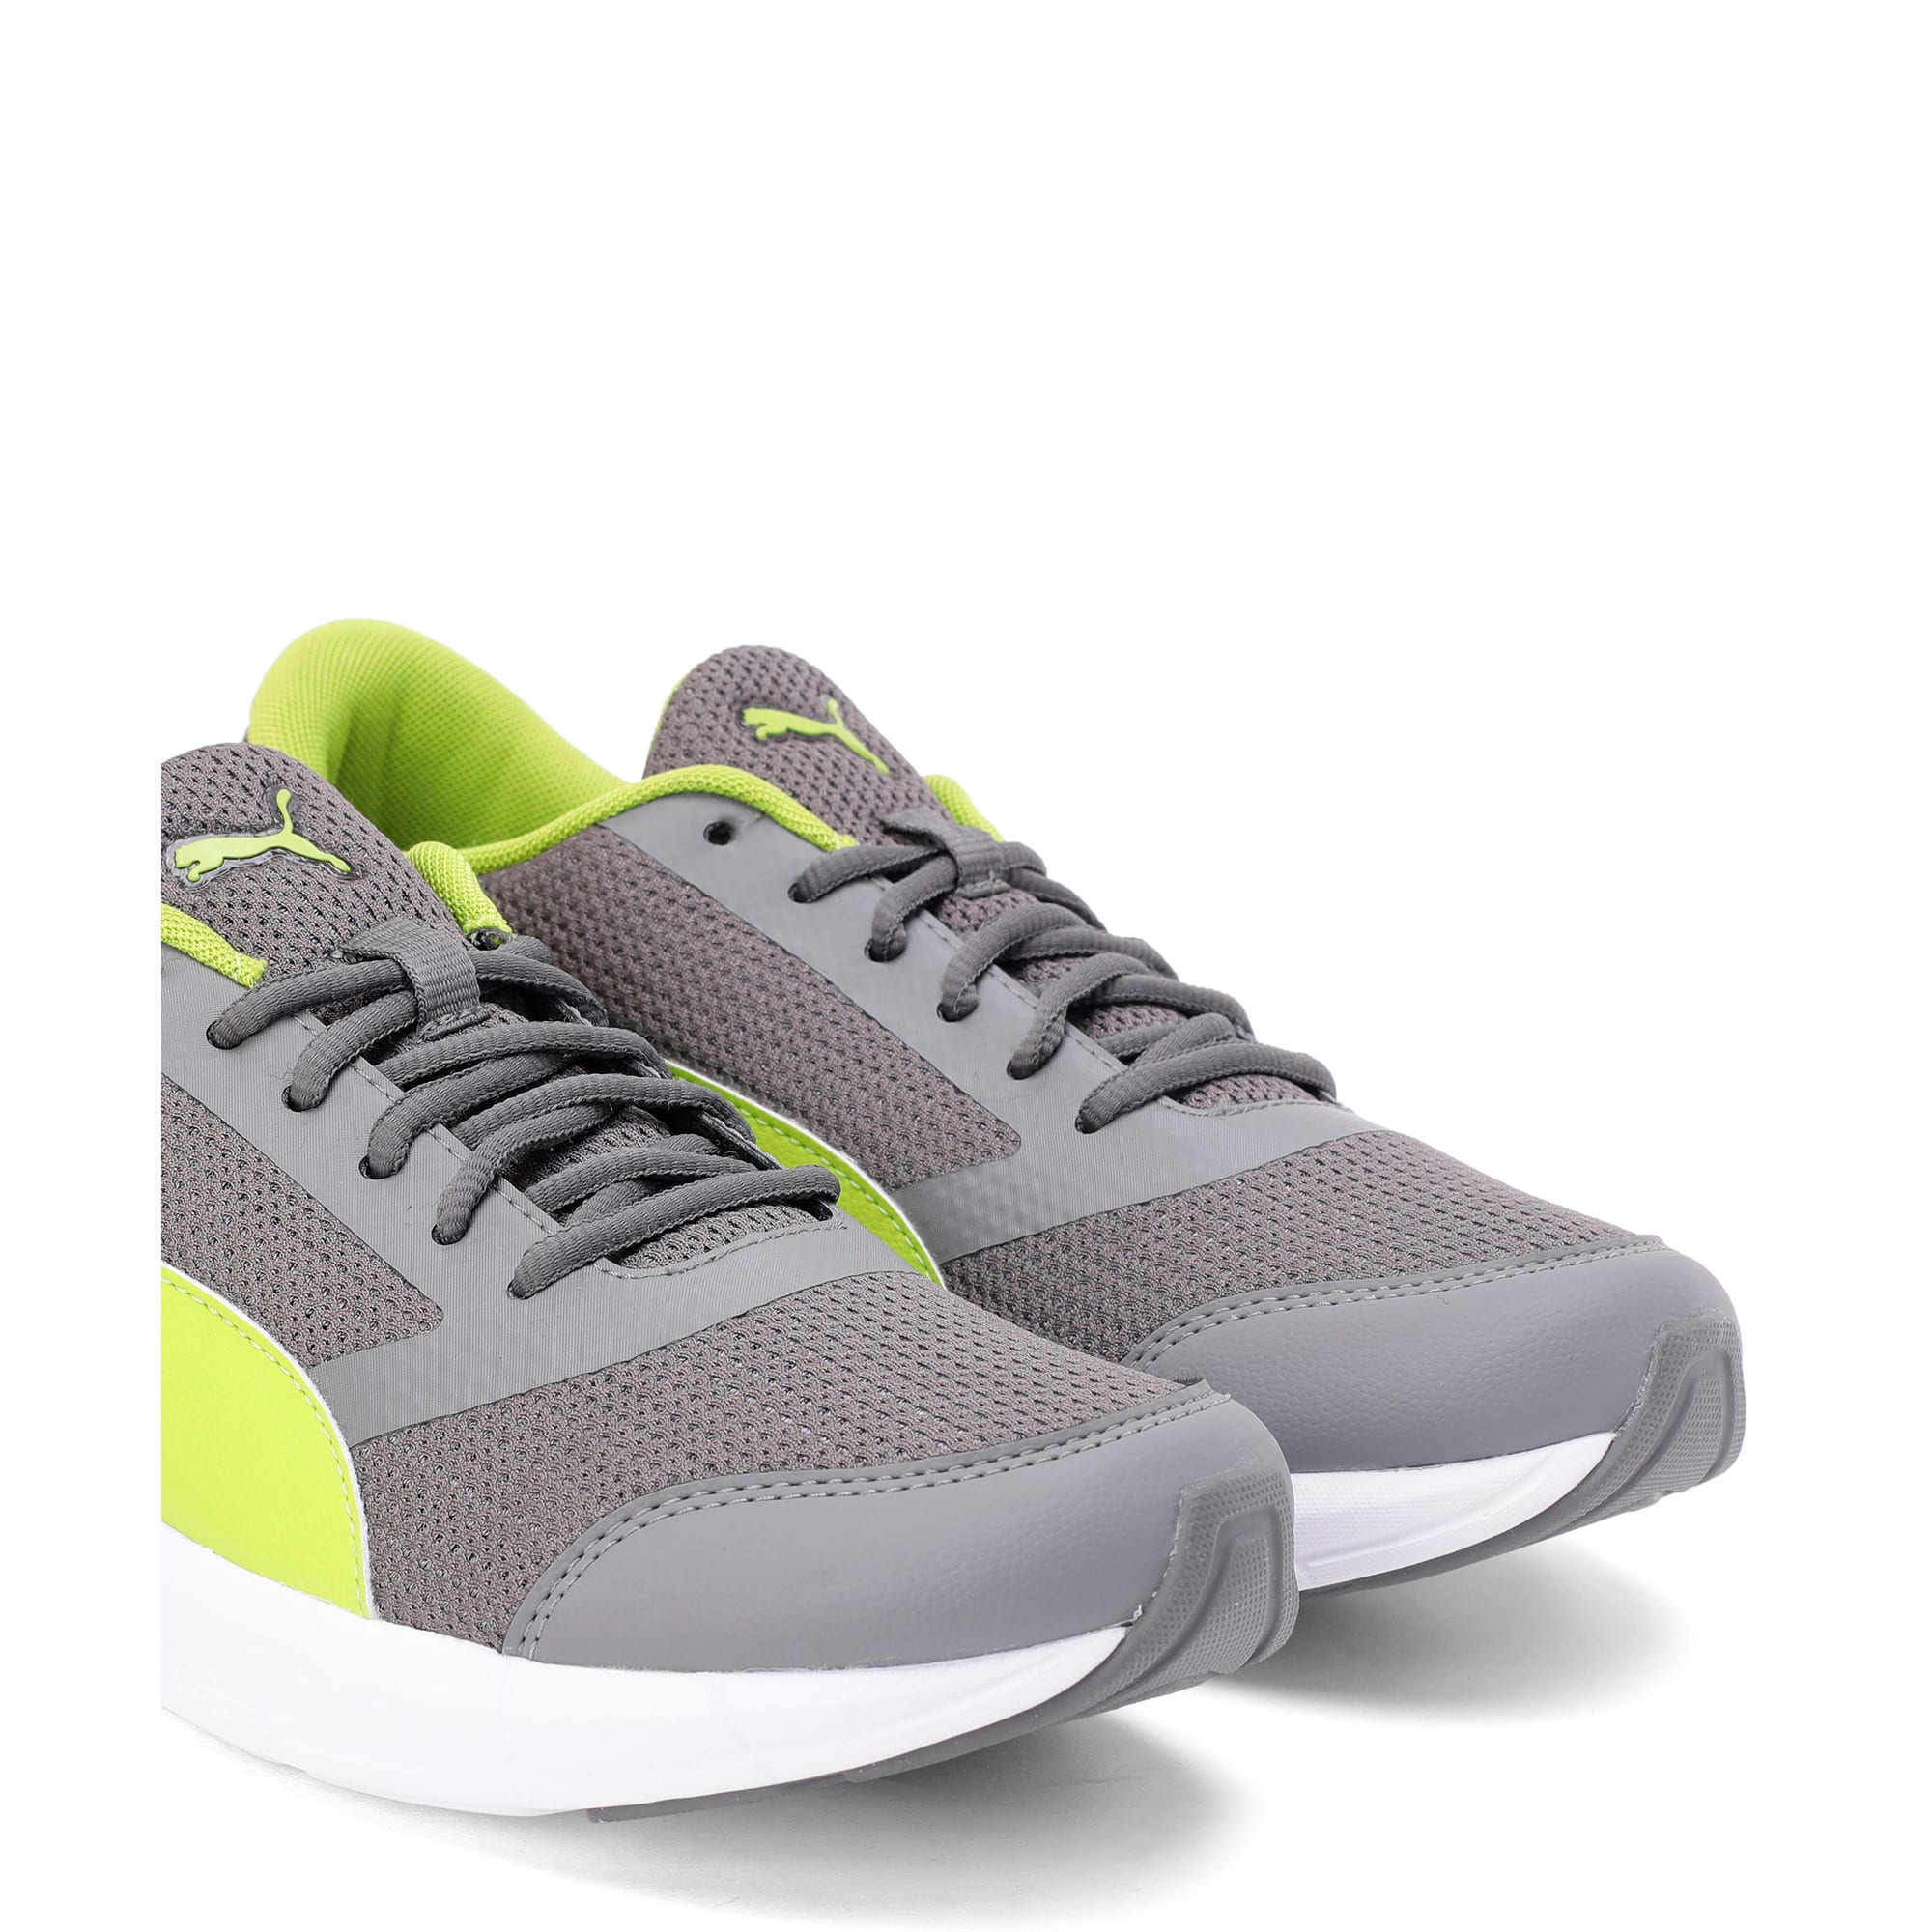 Thumbnail 2 of Solar V IDP Puma Black-Puma White, Charcoal Gray-White-Lime, medium-IND